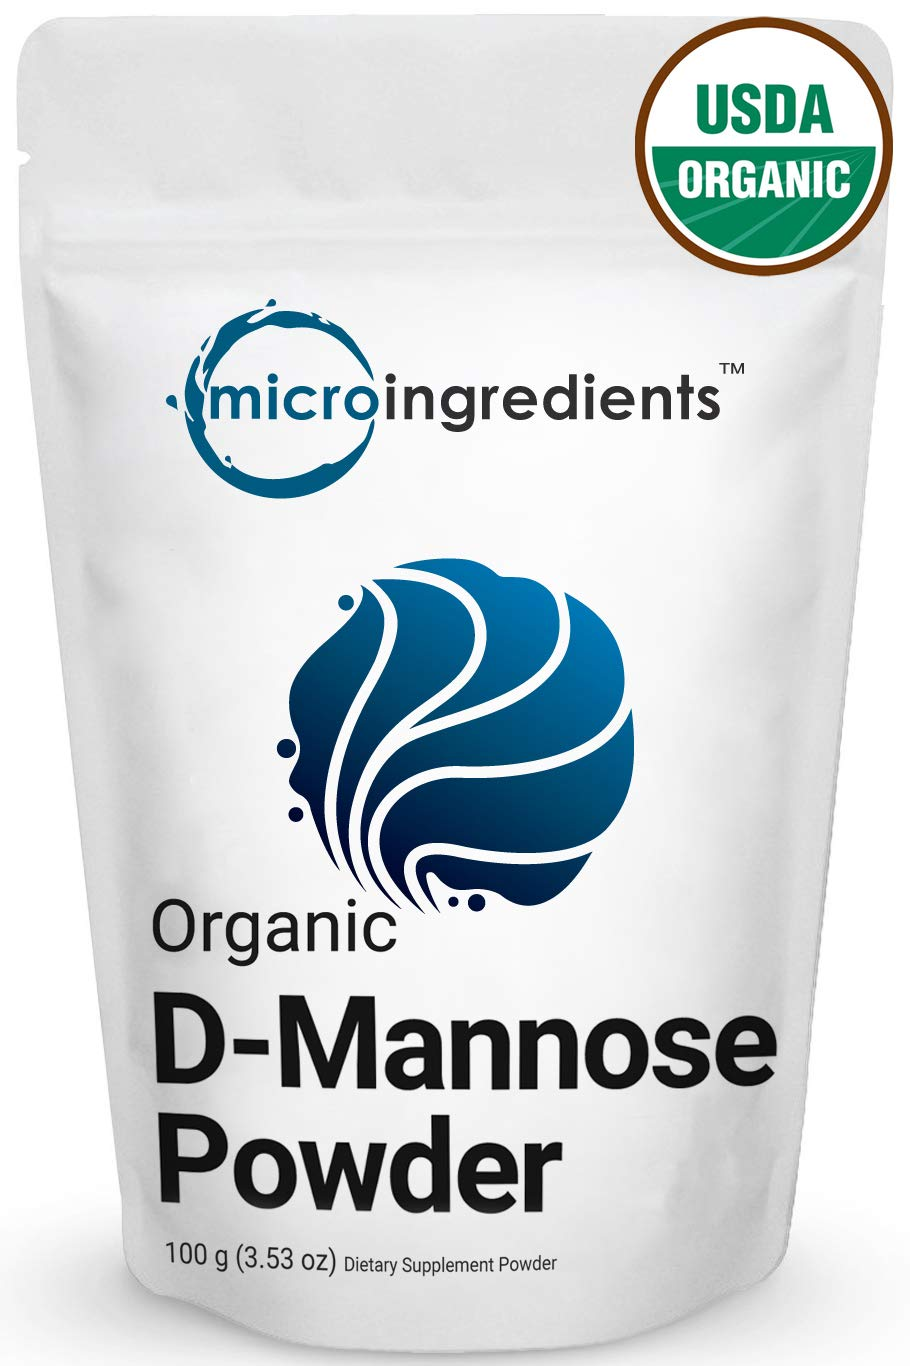 Organic D-Mannose Powder 100 Grams, Maximum Strength to Powerfully Support Urinary Tract Cleanse and Bladder Health for Both Men and Women, No GMOs and Vegan Friendly by Micro Ingredients